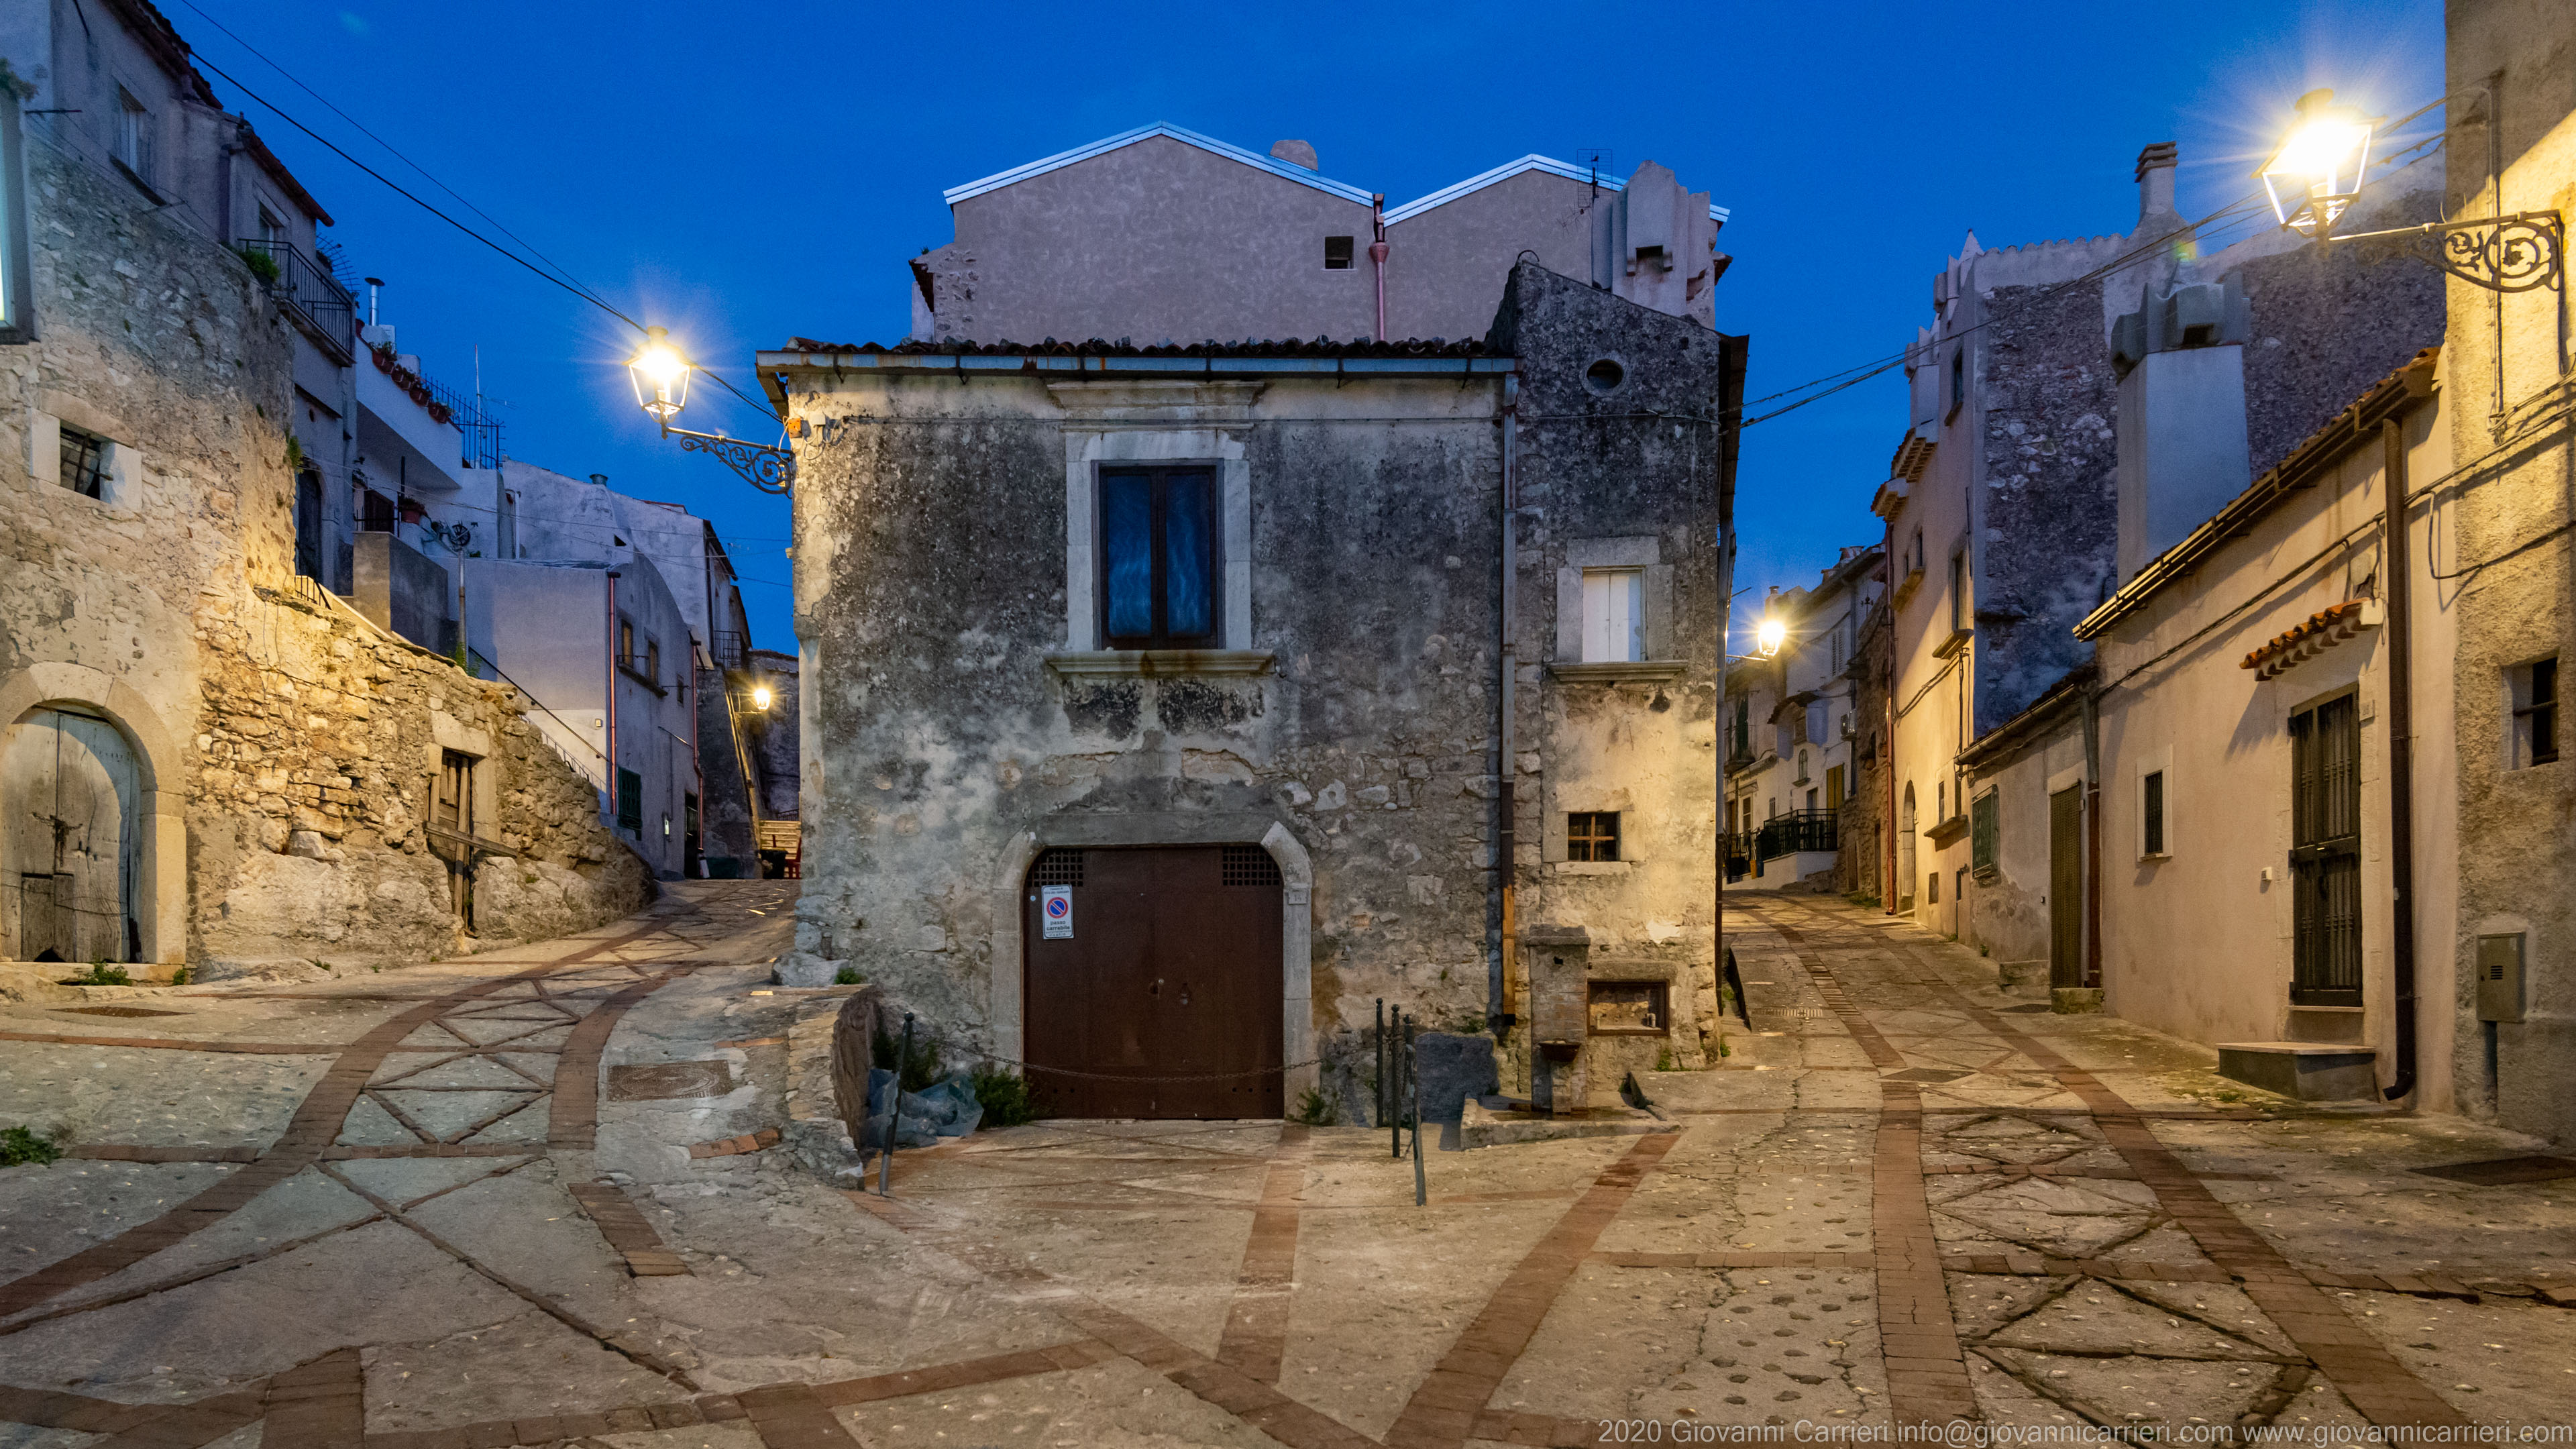 The walls street The buildings in the historic center of Vico del Gargano, in the Casale ward.